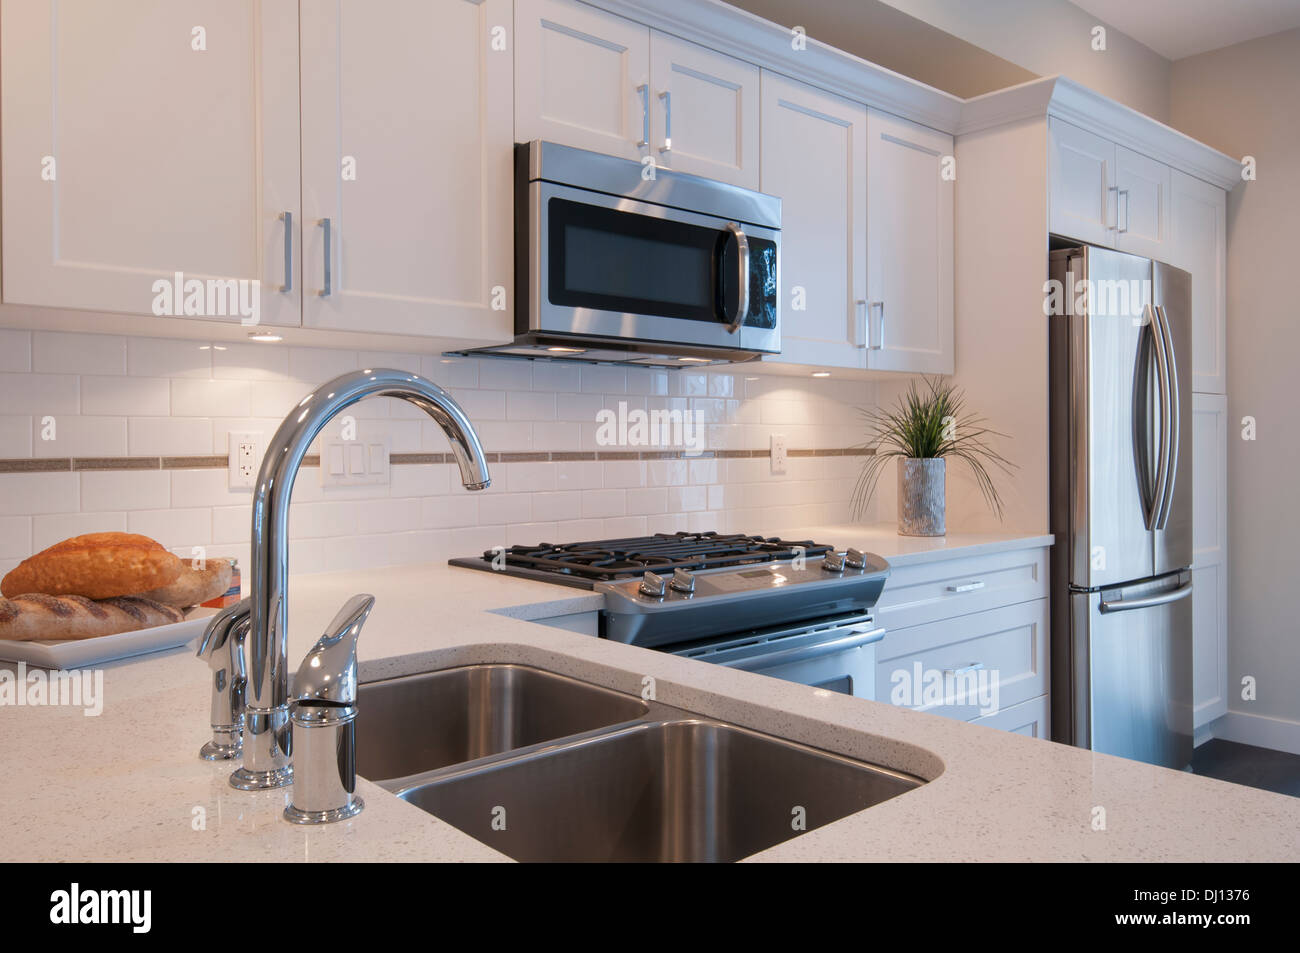 Uncategorized Kitchen Appliances Surrey sink stove and built in microwave oven modern kitchen surrey british columbia canada